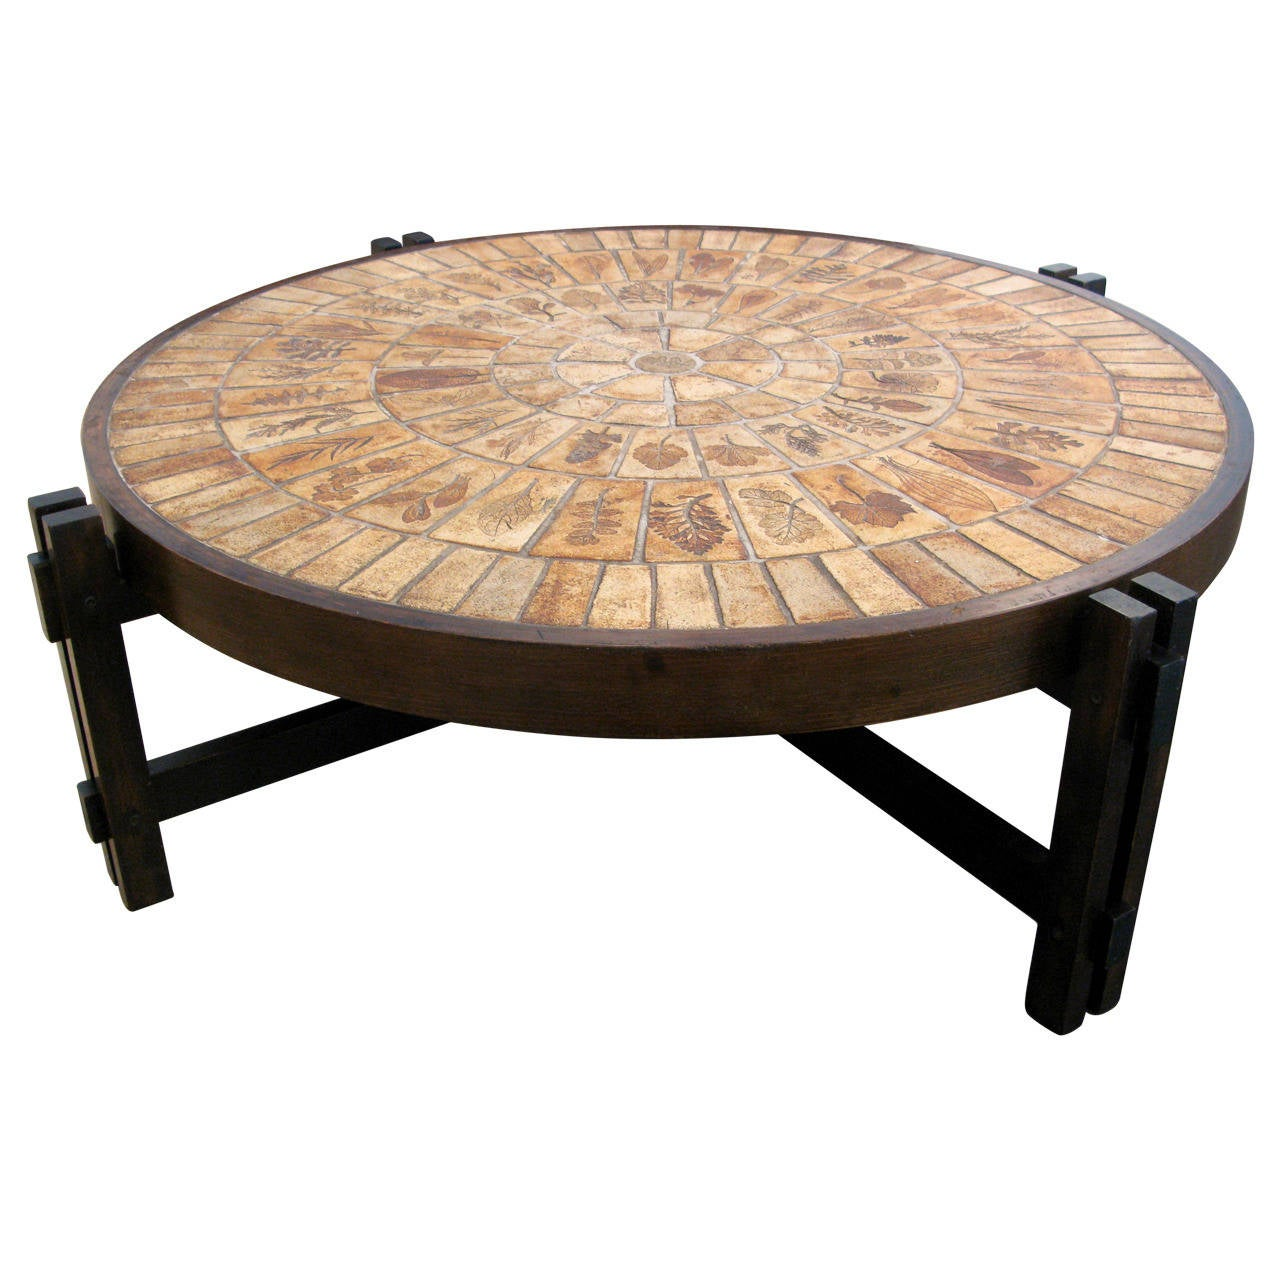 Original Roger Capron Coffee Table At 1stdibs